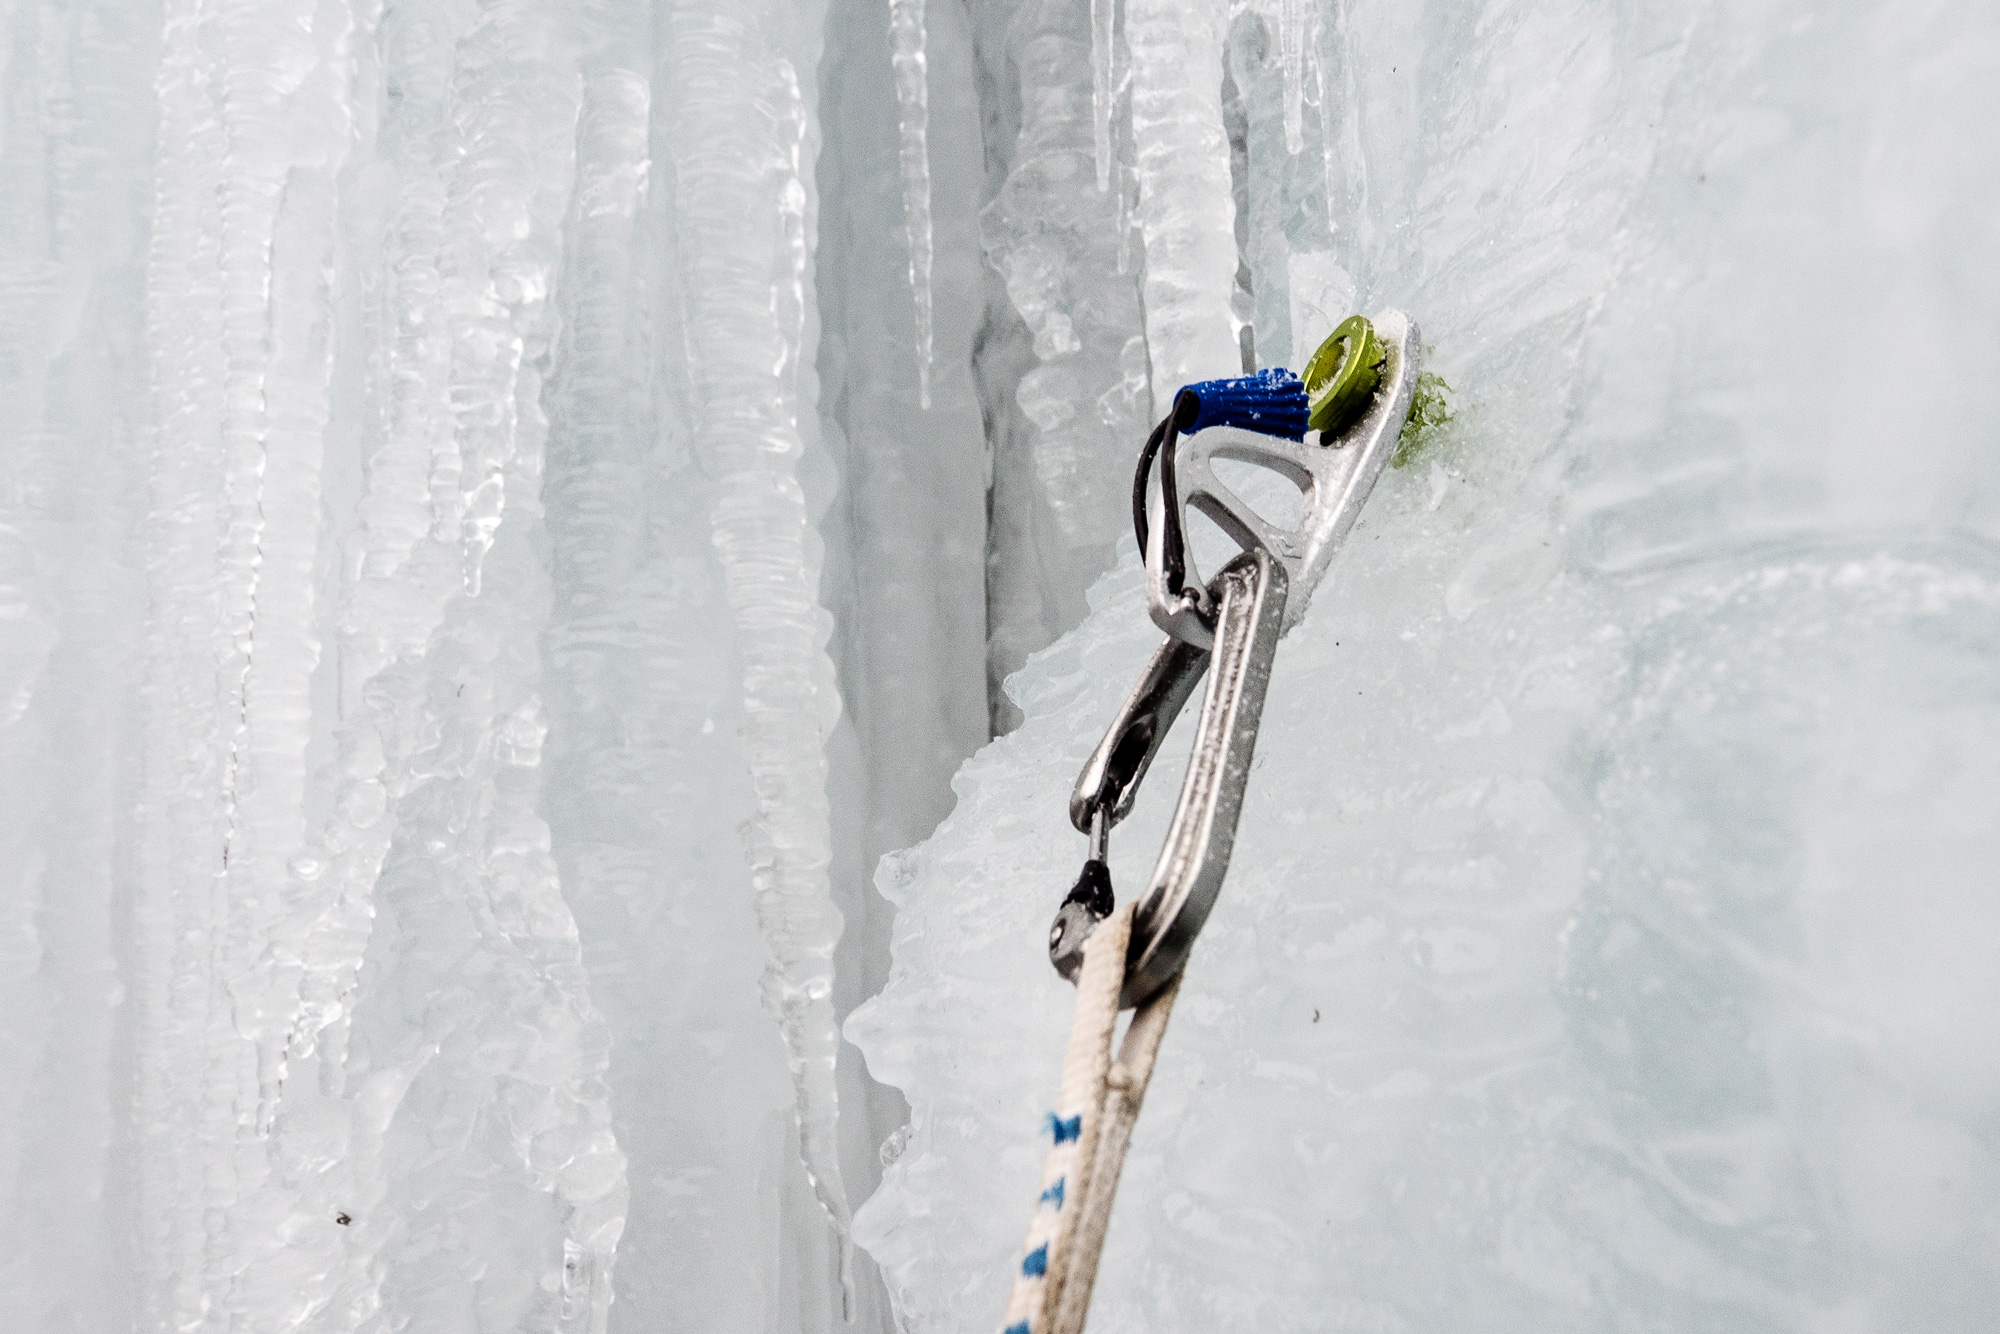 Black Diamond Klettergurt Ultraleicht : Black diamond ultralight ice screw: leichtgewicht eisschraube im test